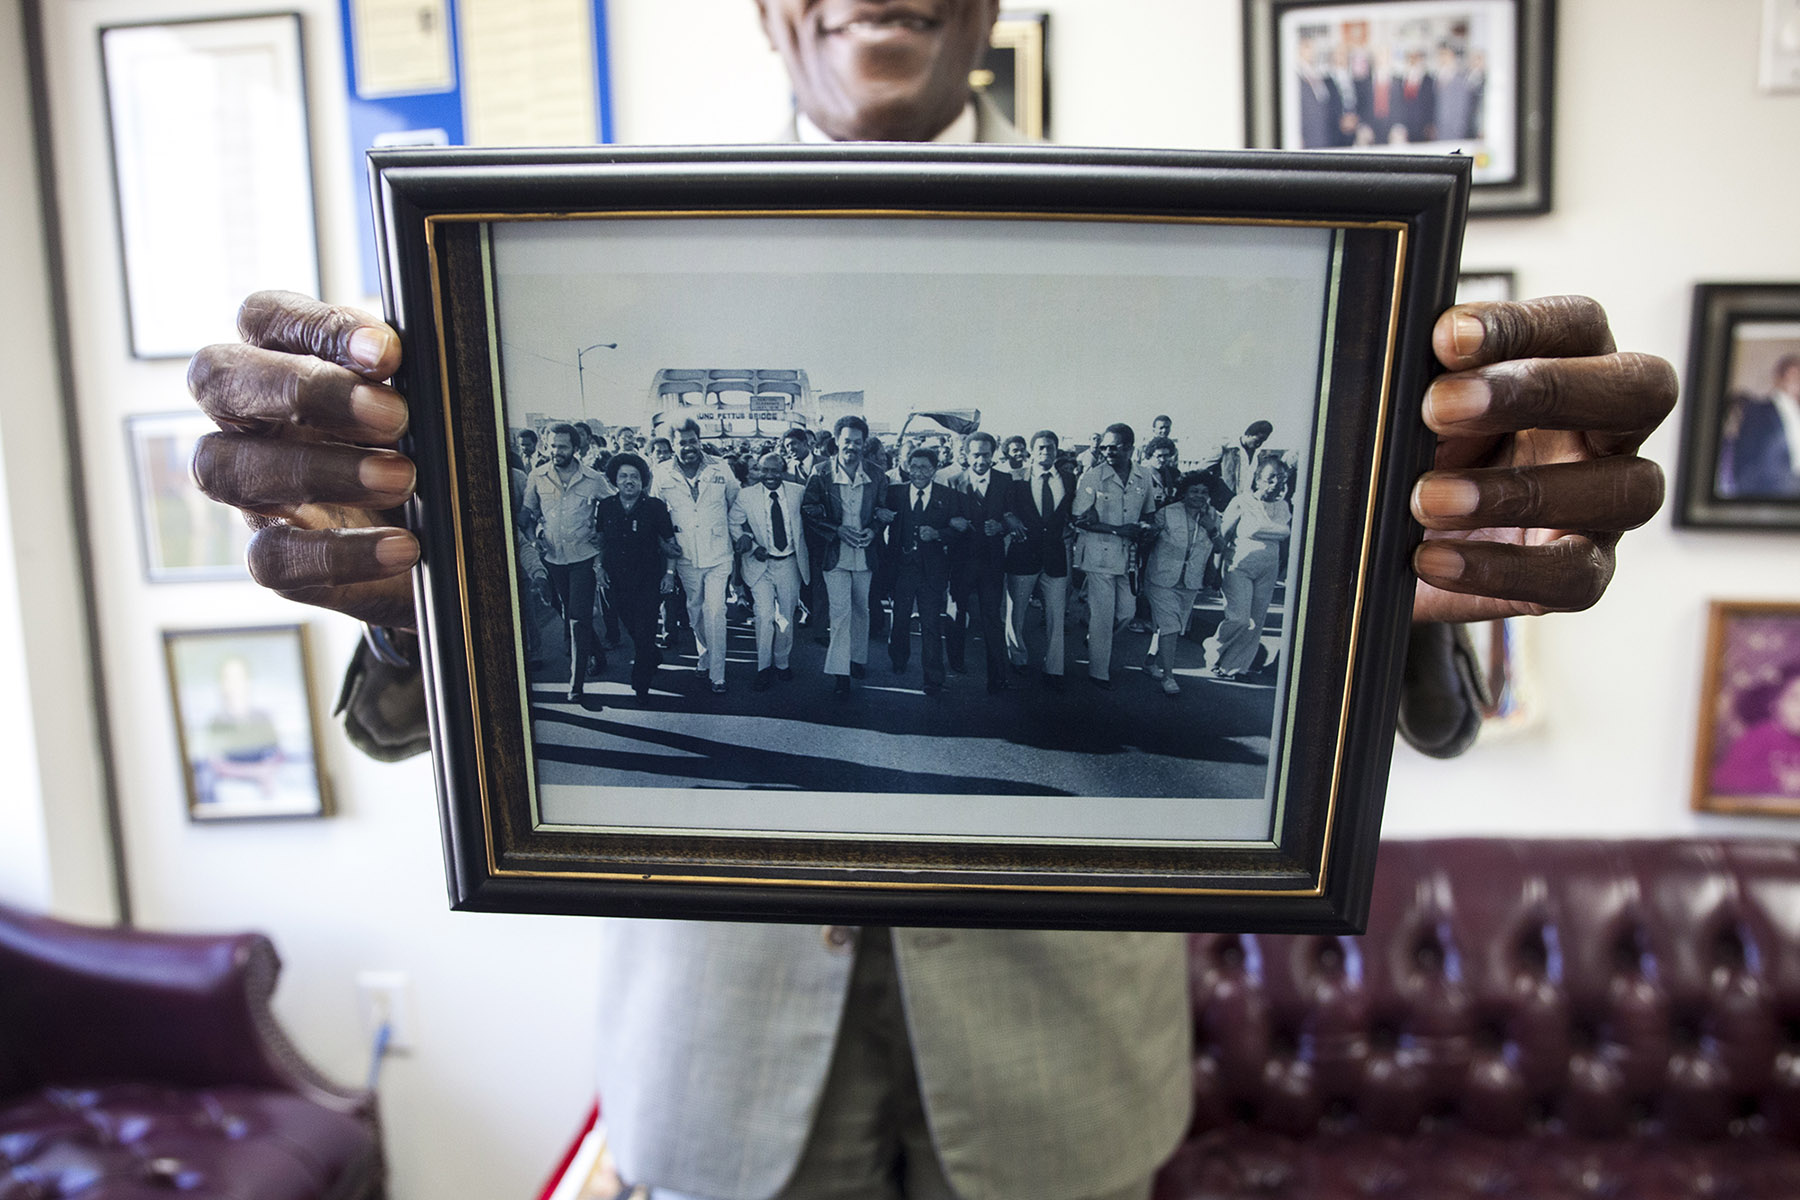 Ford holds up a photo of a commemorative march on the Edmund Pettus Bridge in 2004, but says voter discrimination has not stopped. (Jeffrey Pierre/News21)